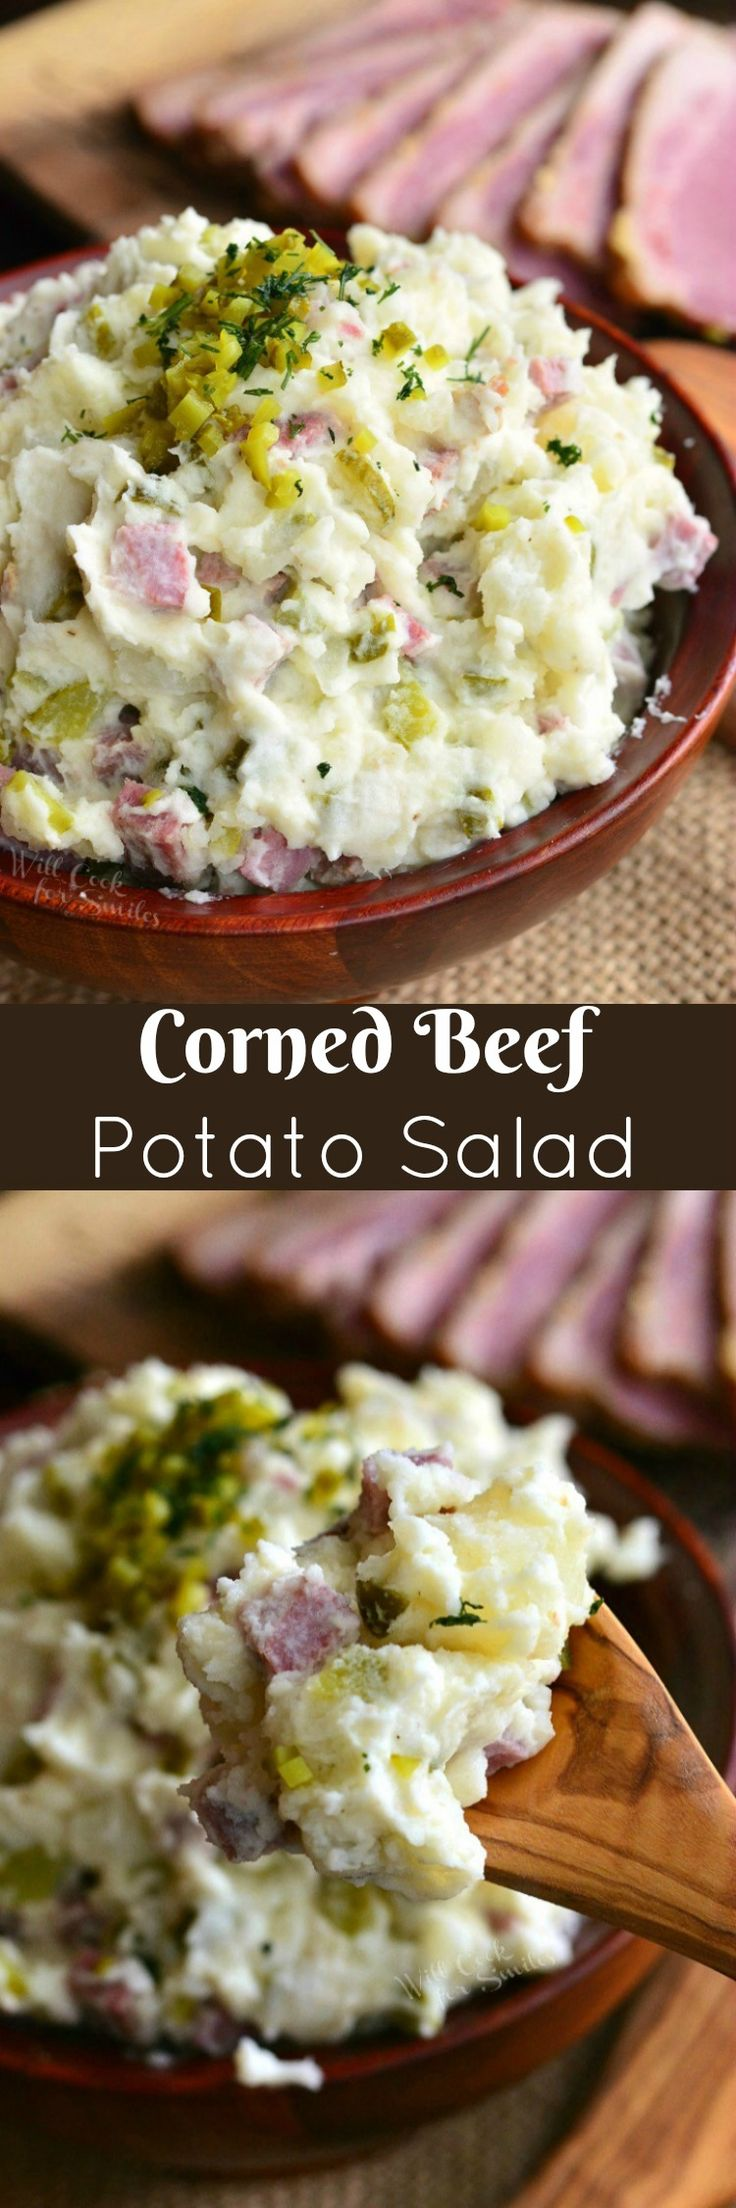 Corned Beef Potato Salad. This delicious potato salad made with tender corned beef brisket and crunchy dill pickles.